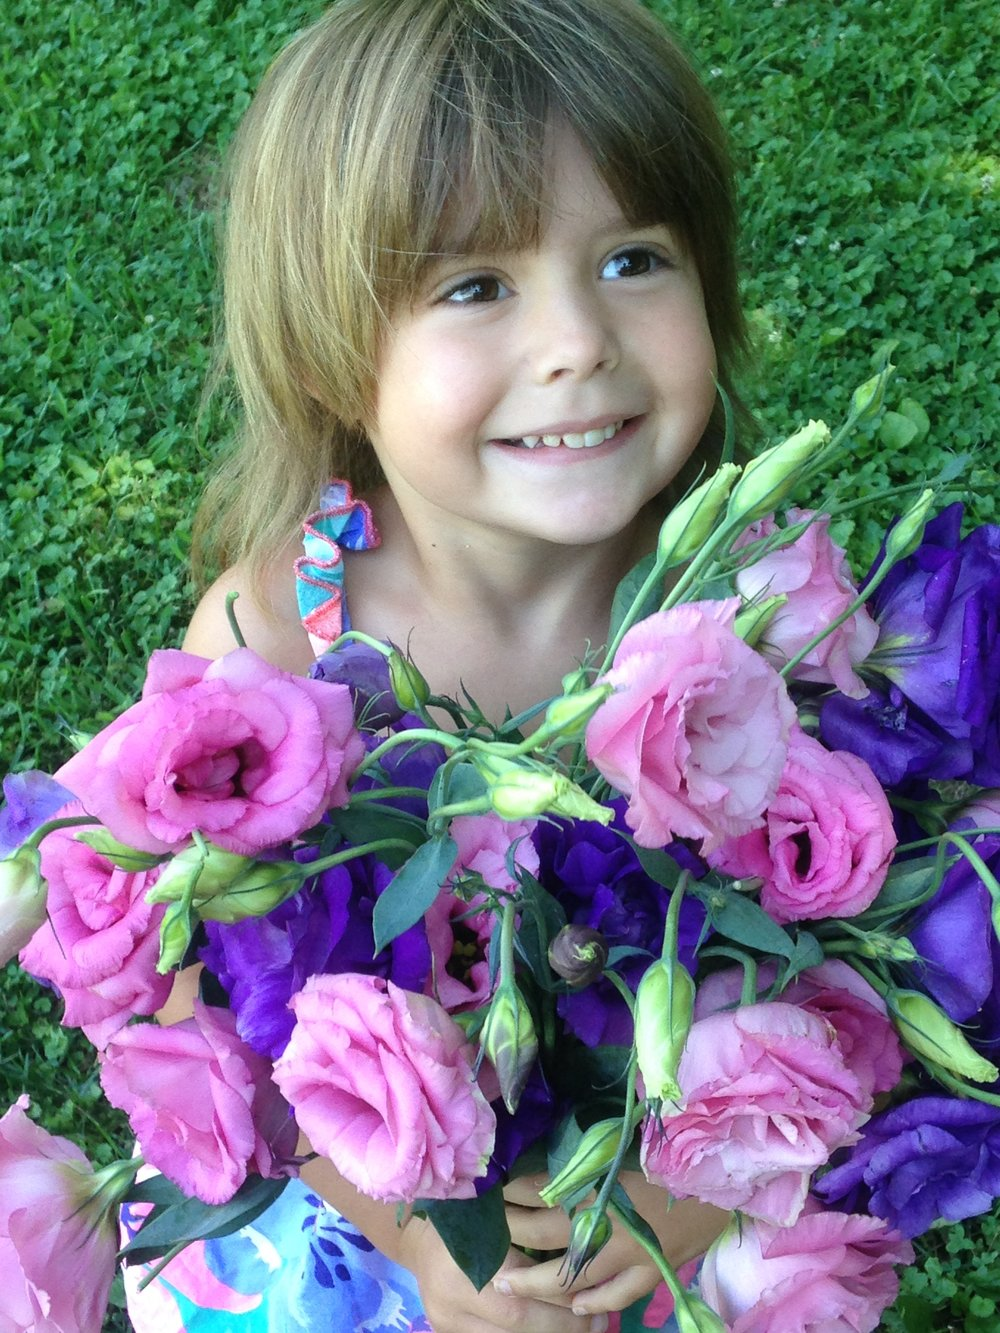 Liza with her lisianthus